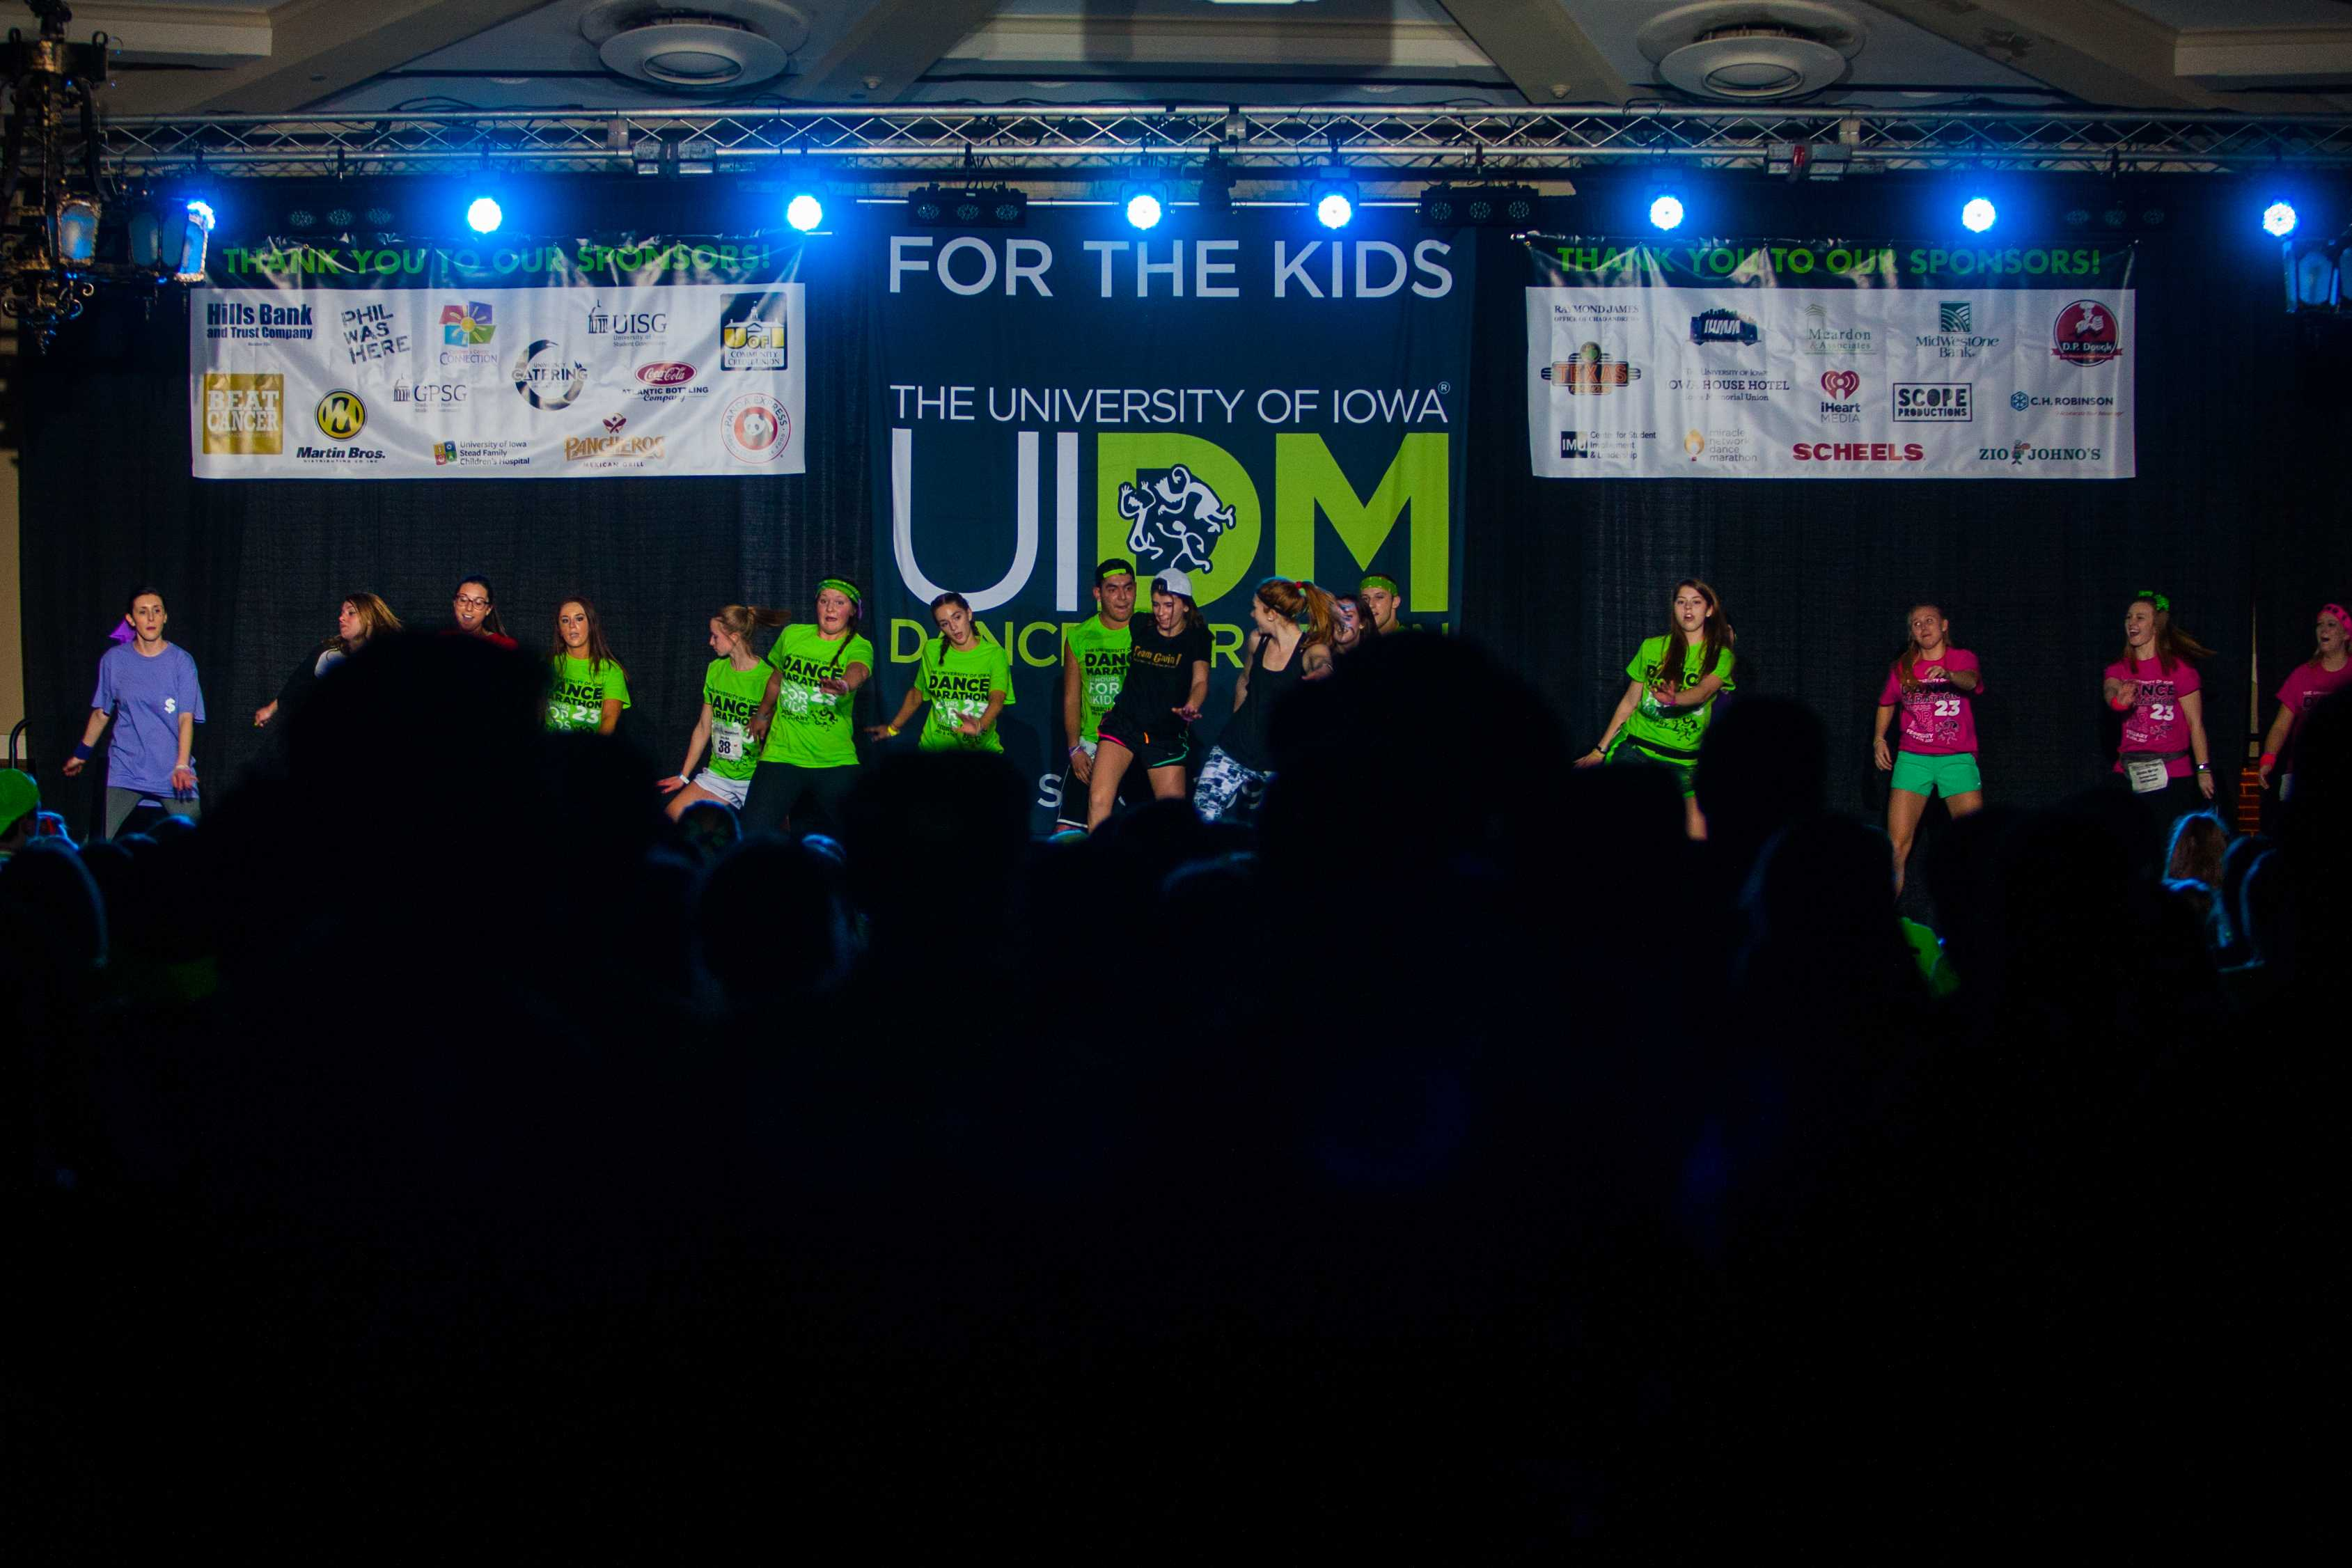 Dancers reach the halfway point of the 23rd Dance Marathon on February 4, 2017.(The Daily Iowan/file)